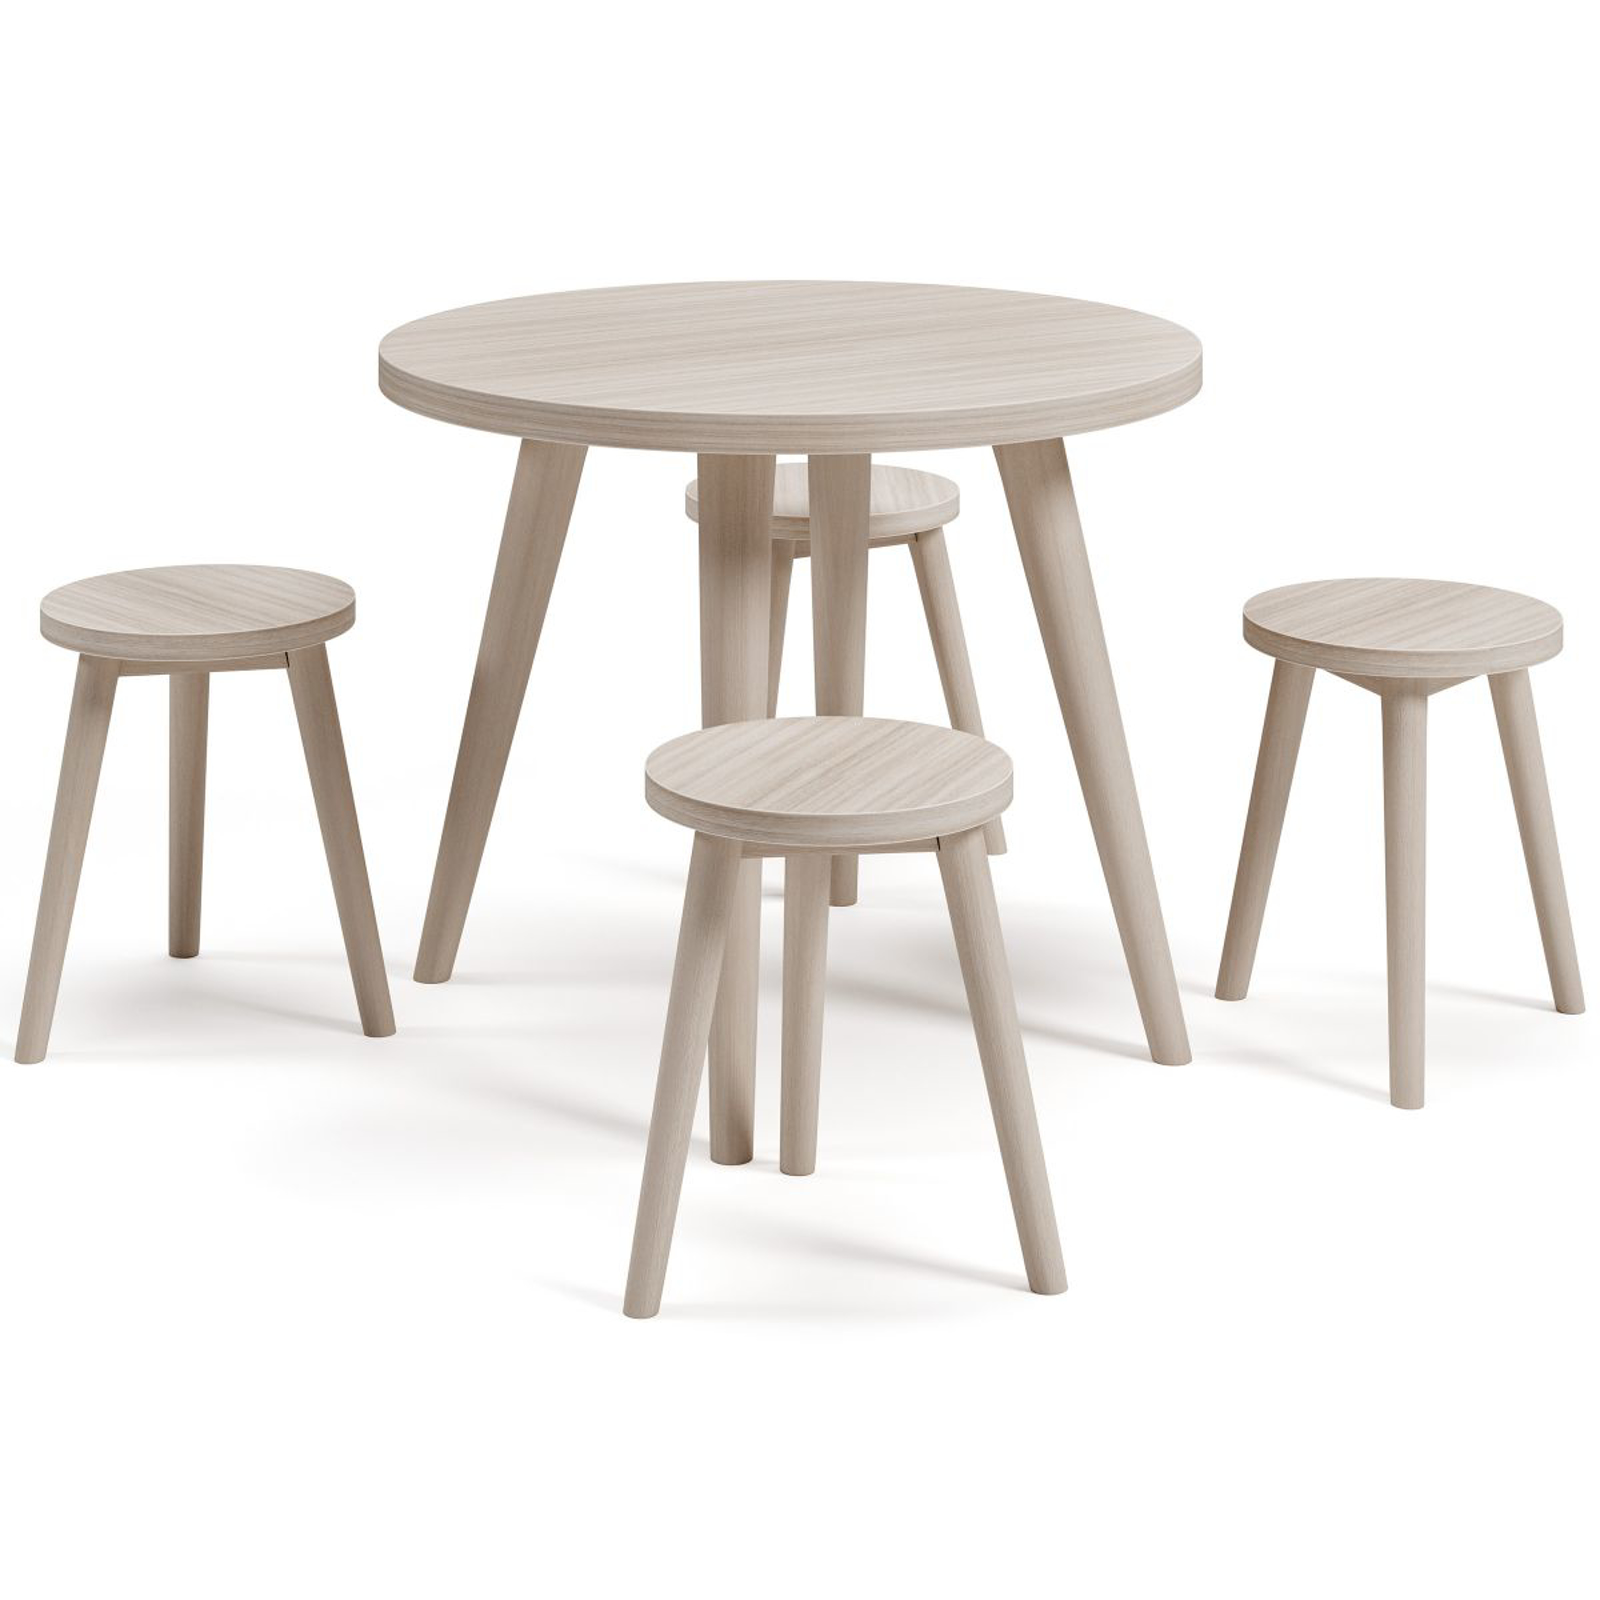 Picture of Blariden Table & 4 Chairs